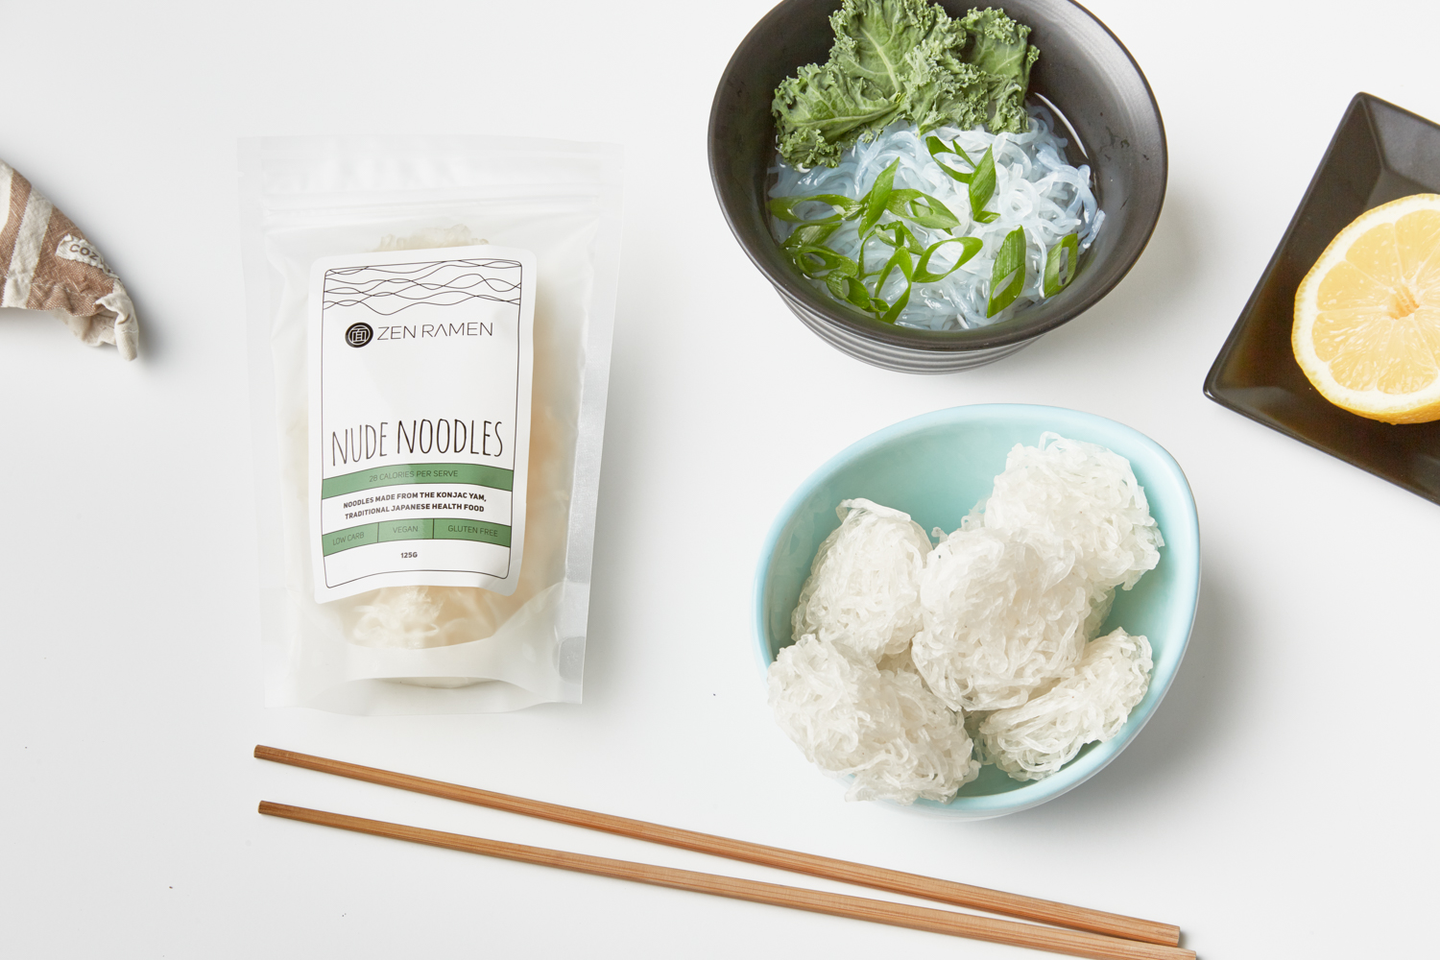 WHAT ARE ZEN RAMEN NUDE NOODLES?